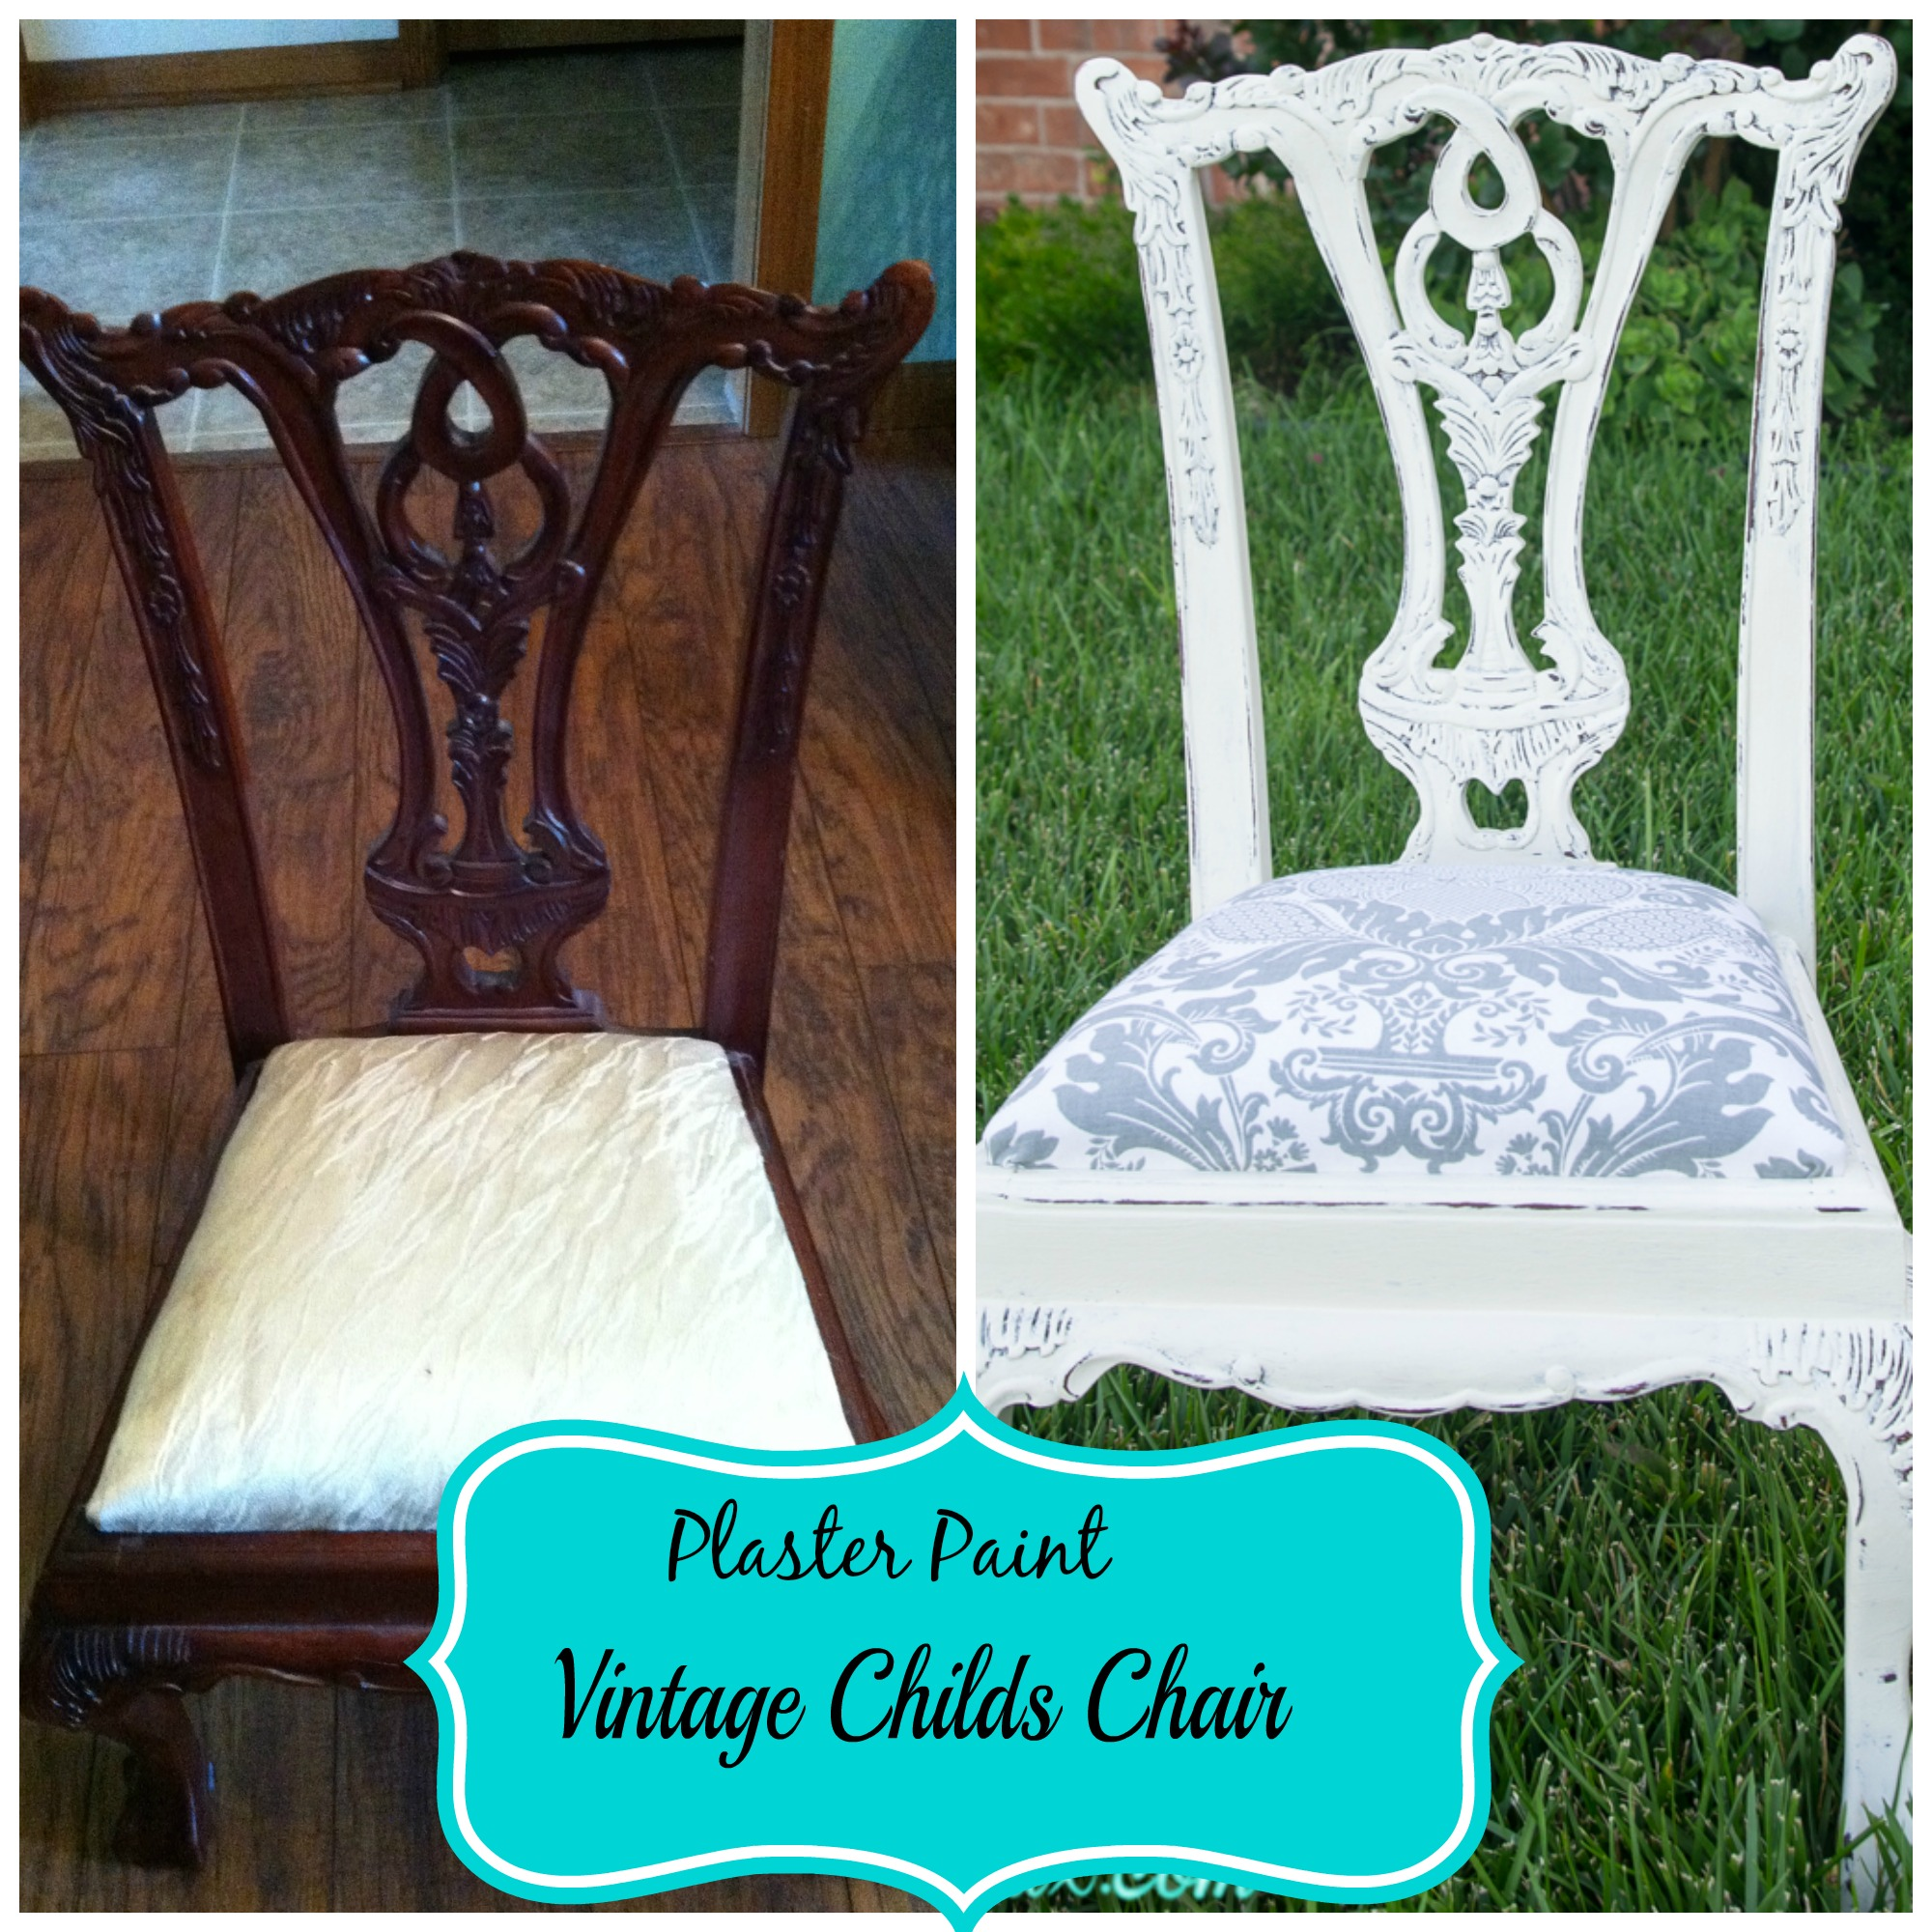 Plaster Painted Vintage Childu0027s Chair & Plaster Painted Vintage Childu0027s Chair - Daily Dose of Style